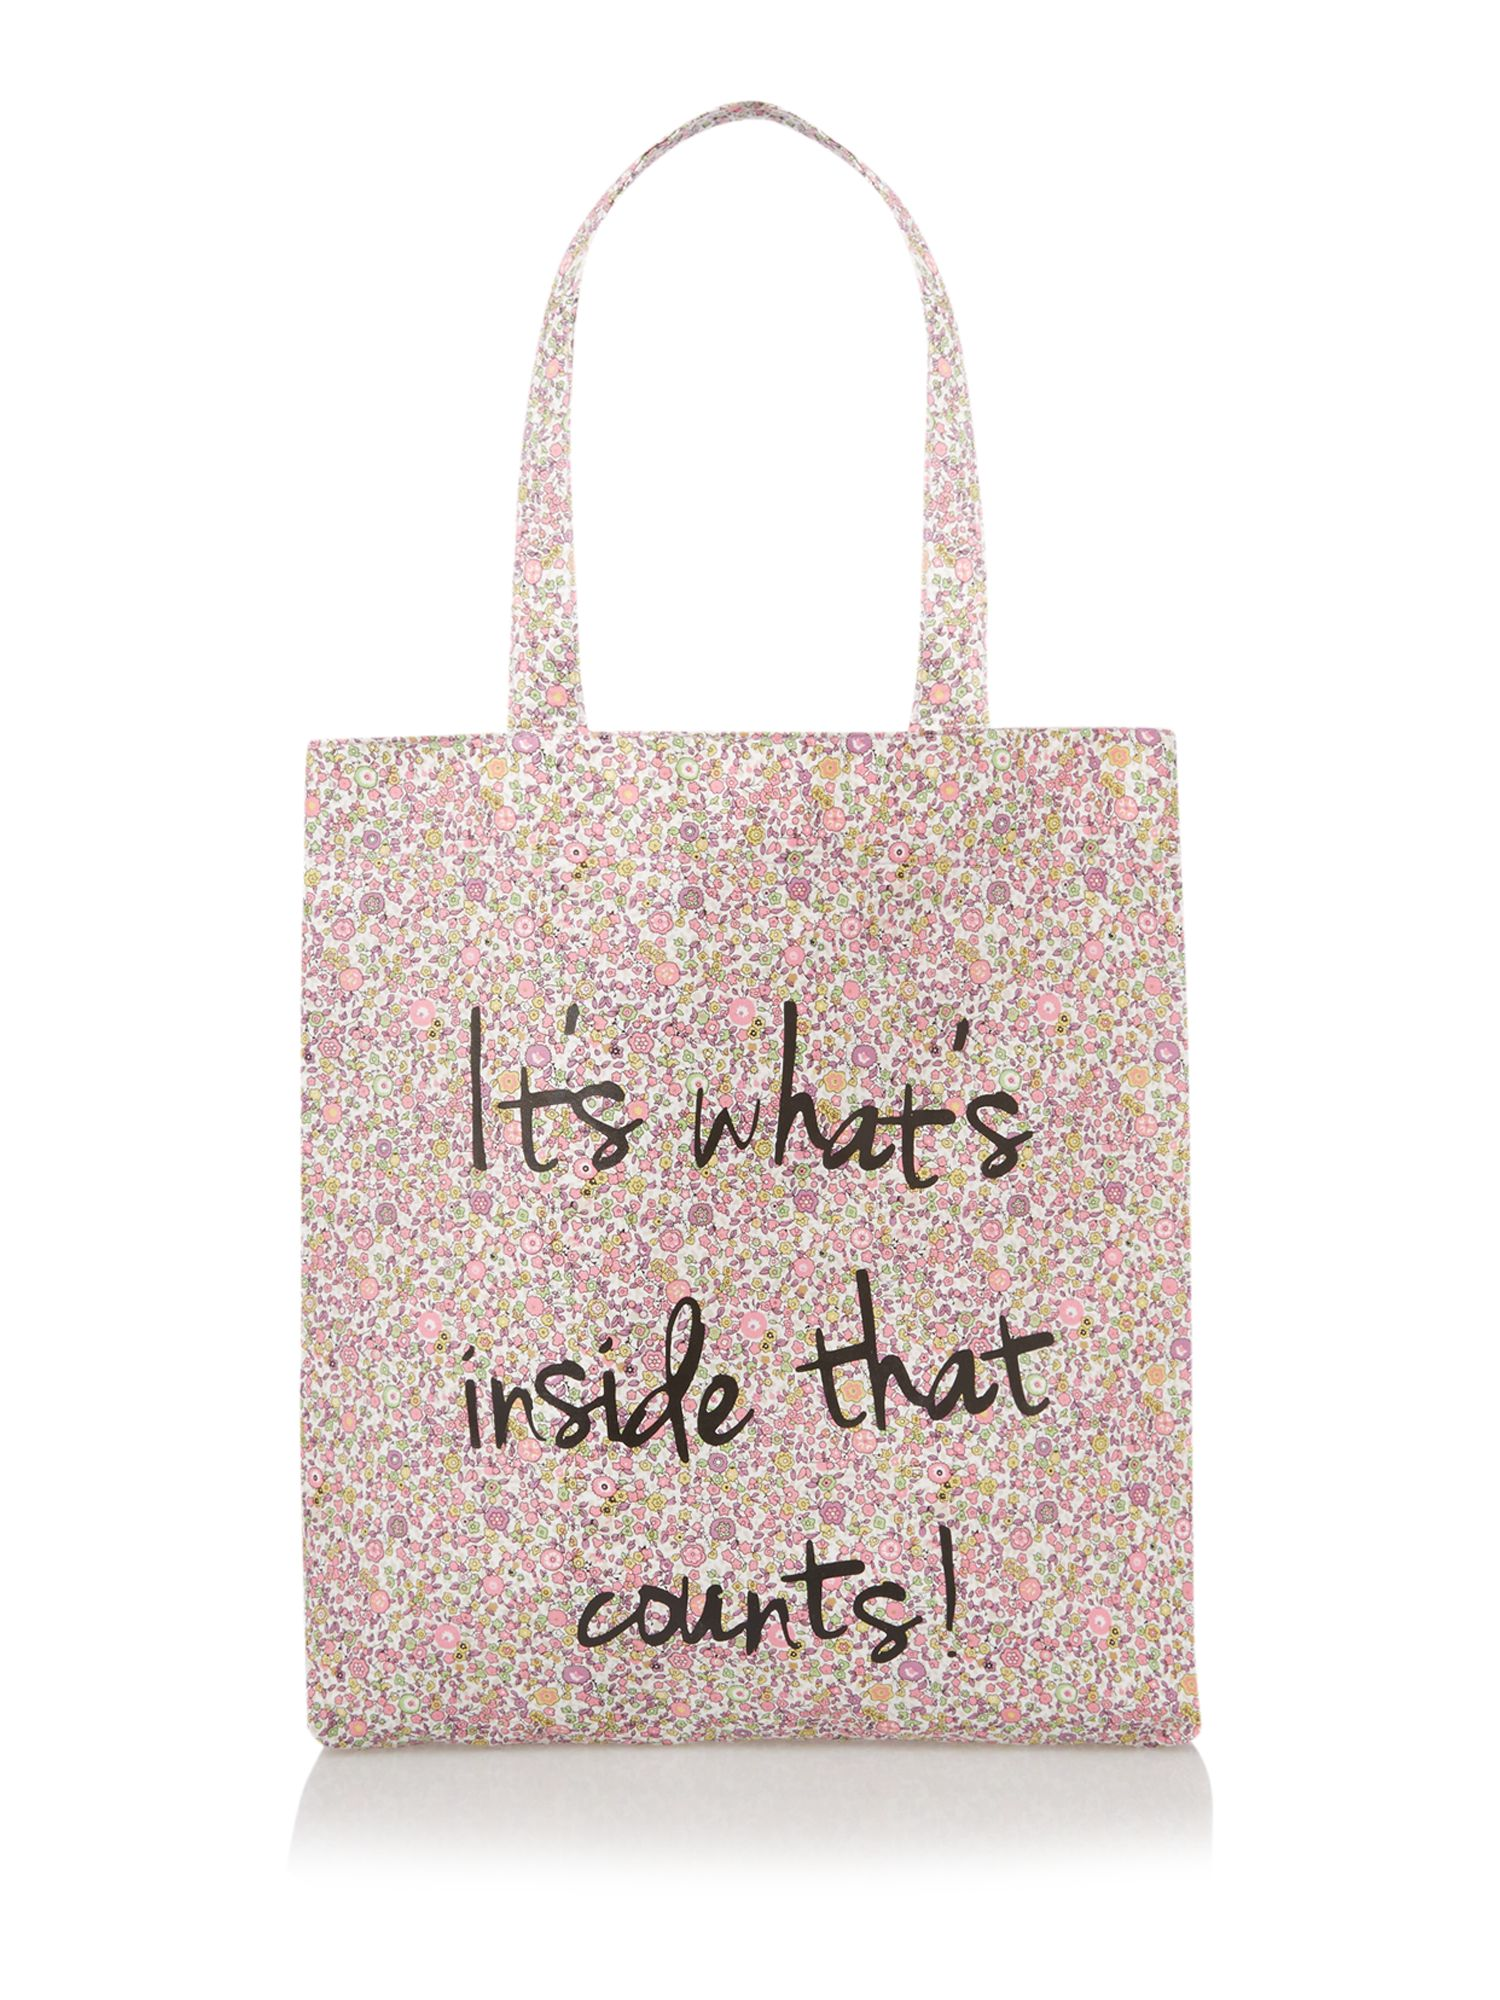 Multi coloured entry shopper bag